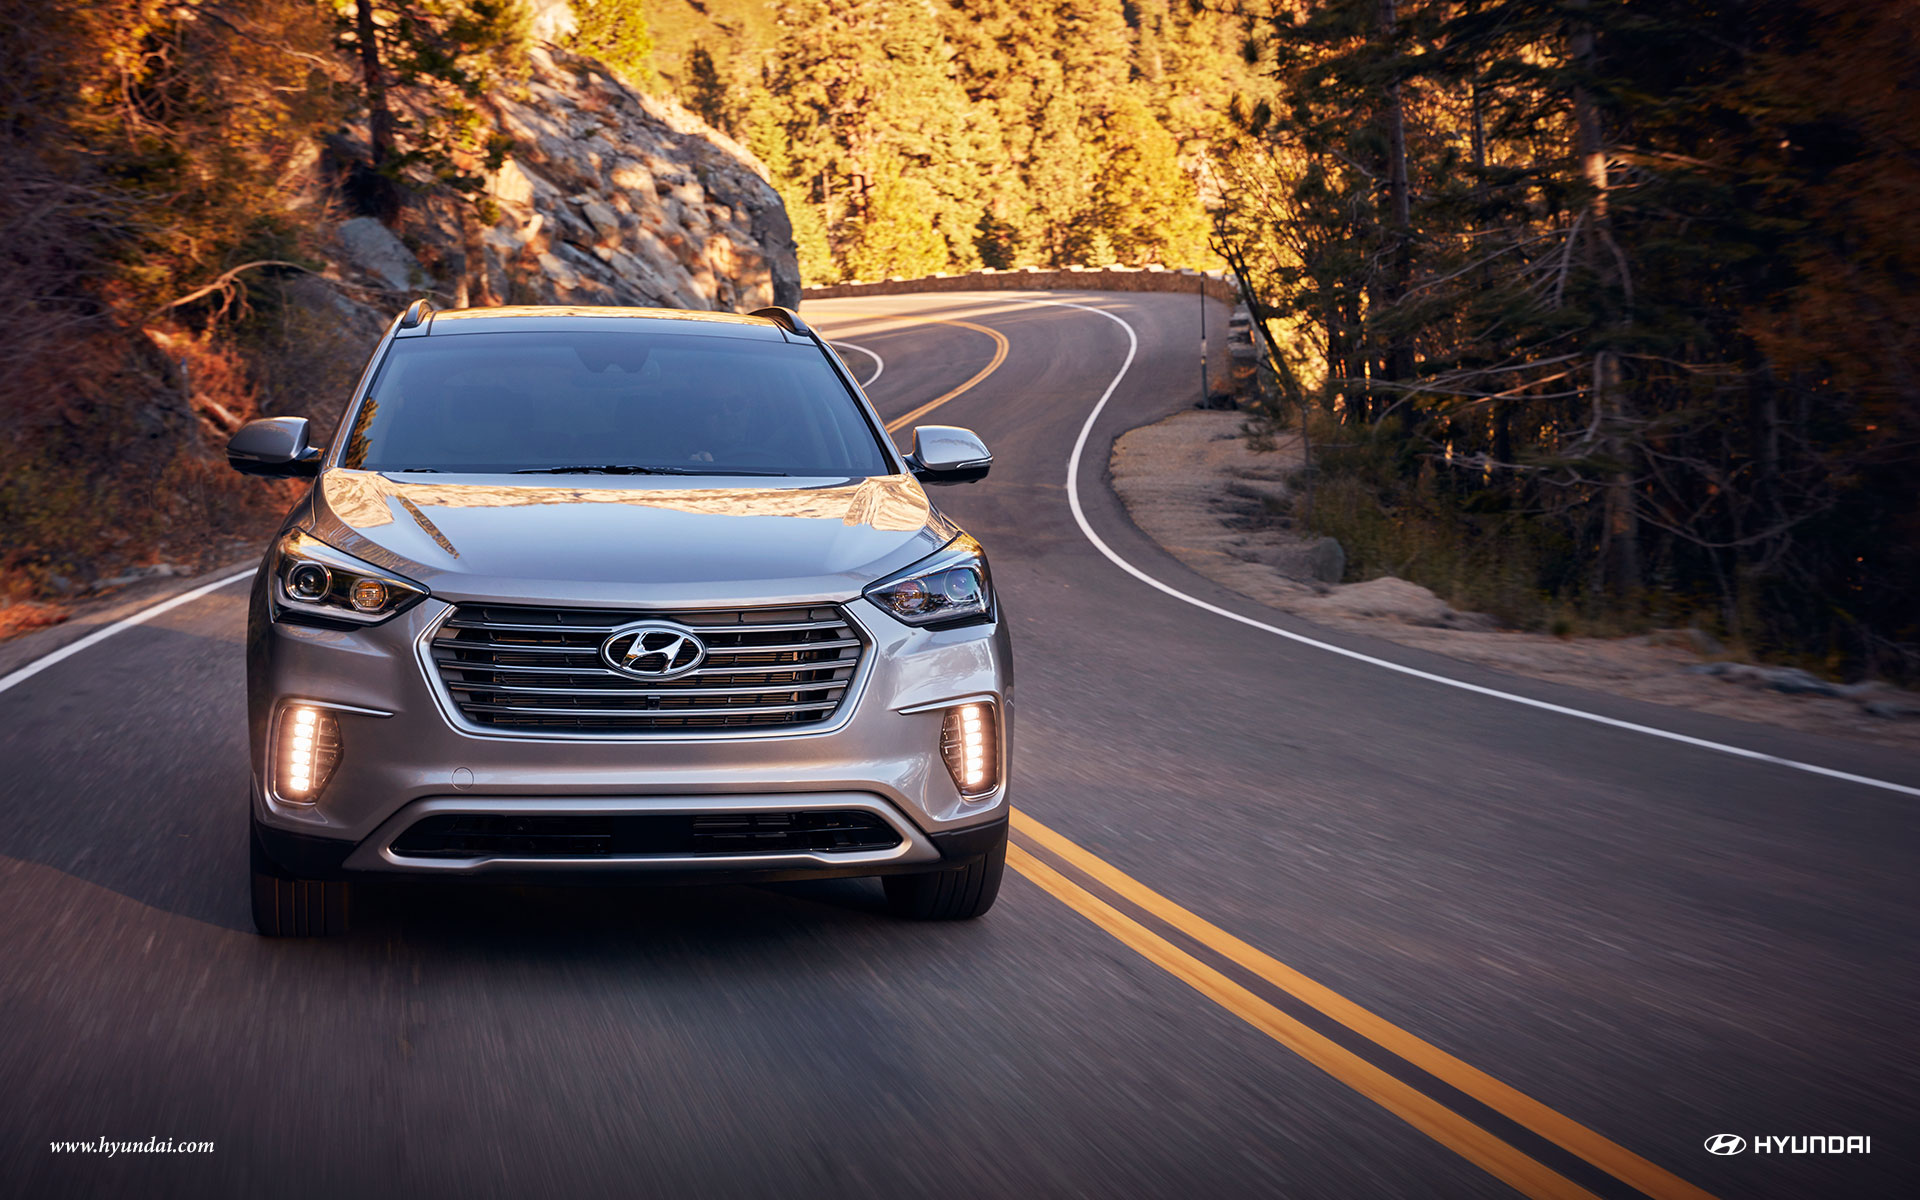 2018 Hyundai Santa Fe by Longmont CO